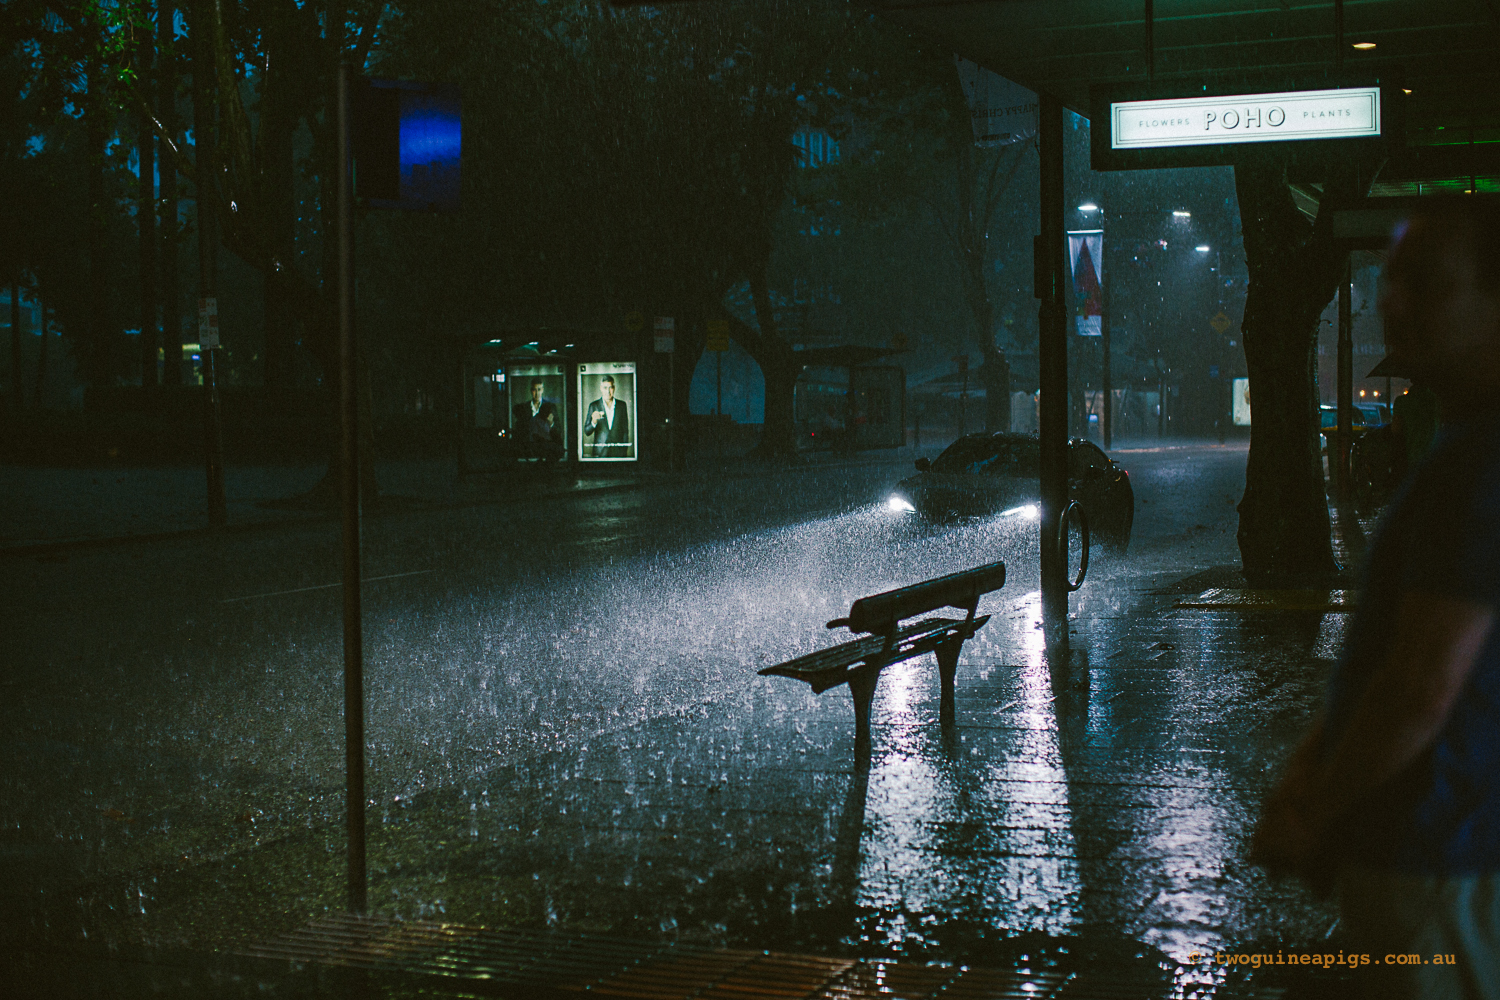 twoguineapigs_pet_photography_summer_storm_kings_cross_potts_point_rain